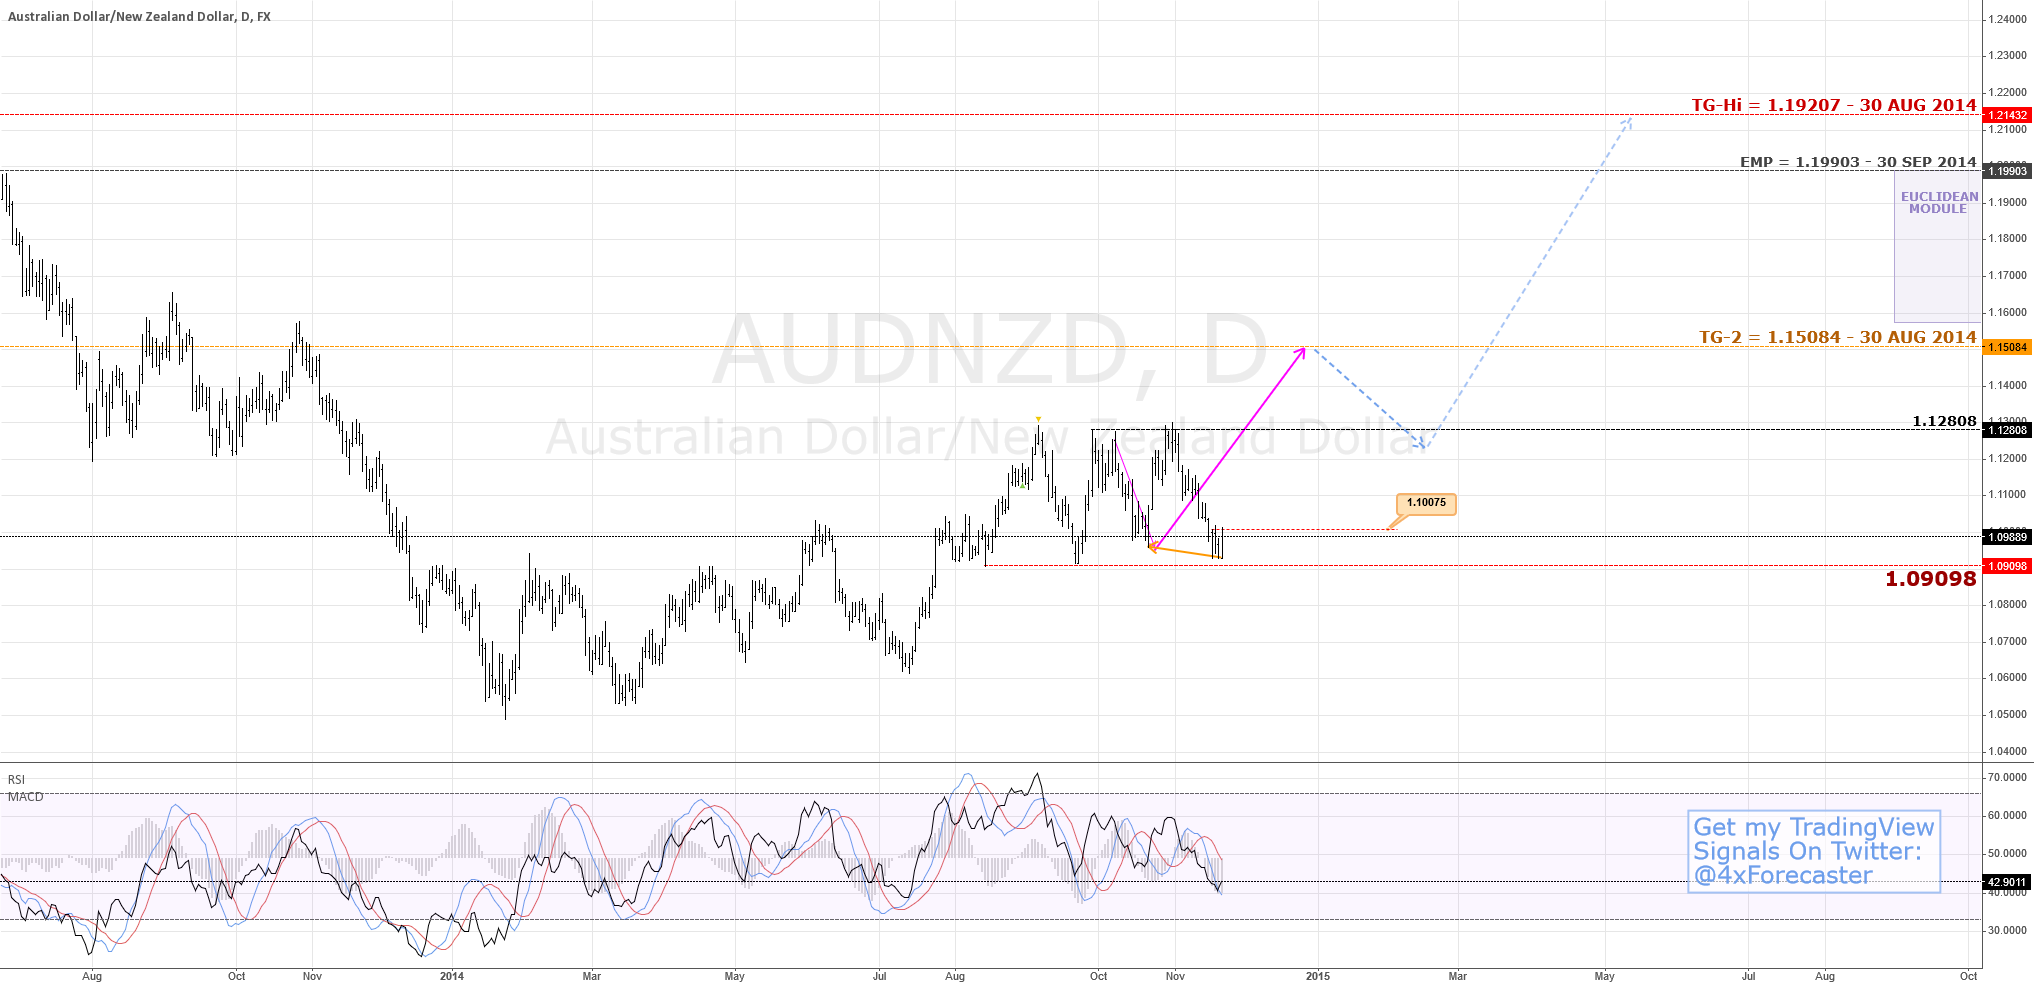 Fundamental, Technical, Predictive Analyses Review | $AUD $NZD